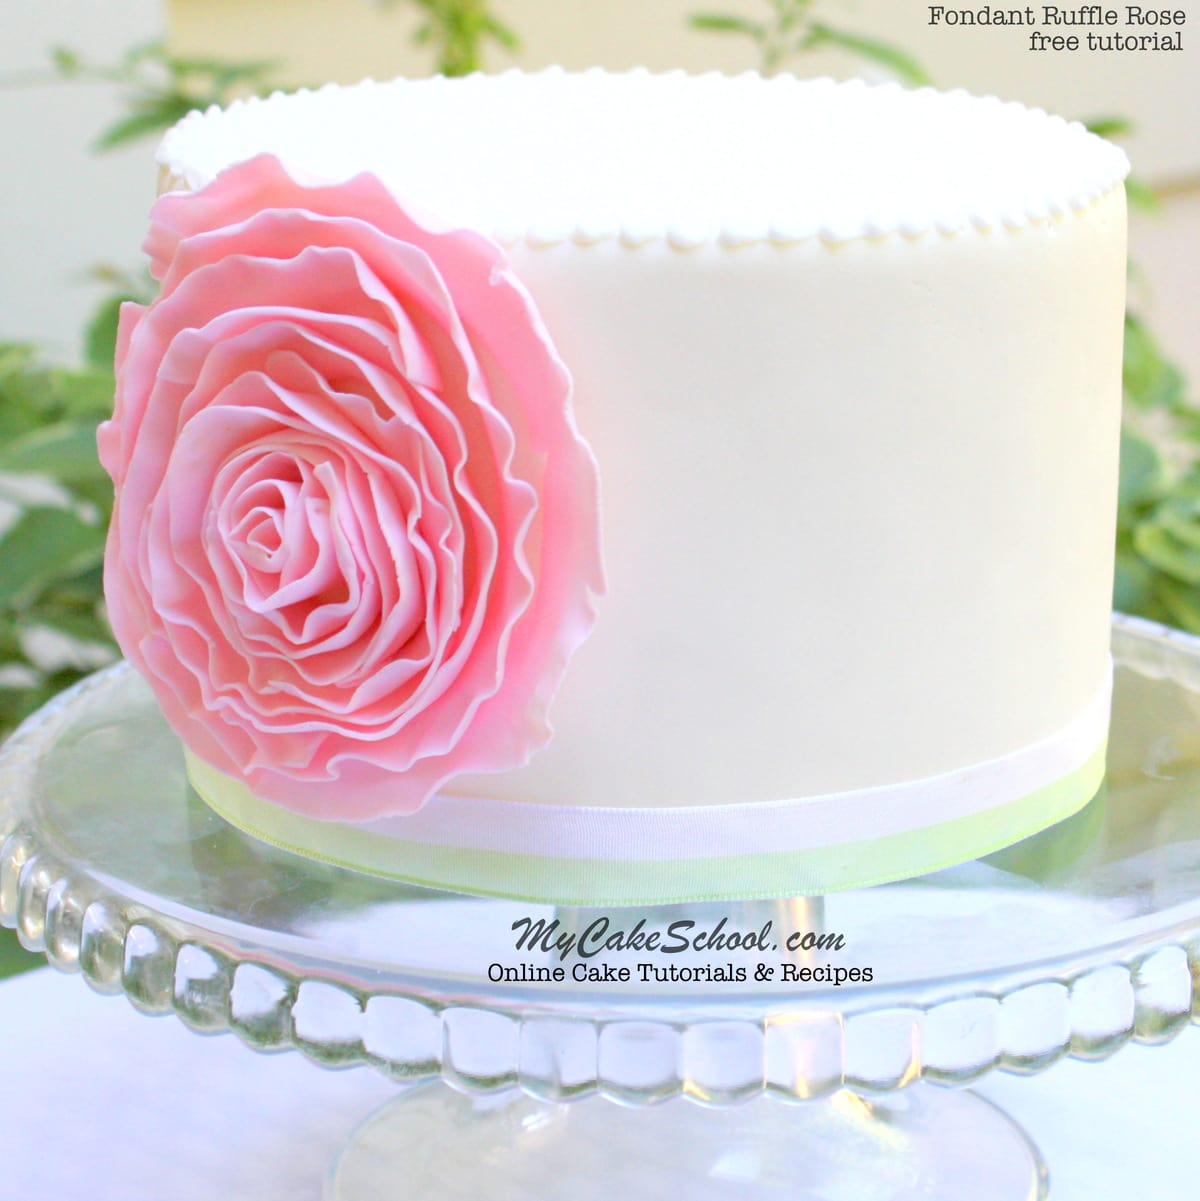 Learn how to make an elegant Fondant Ruffle Rose Cake in this free step by step cake tutorial by MyCakeSchool.com!